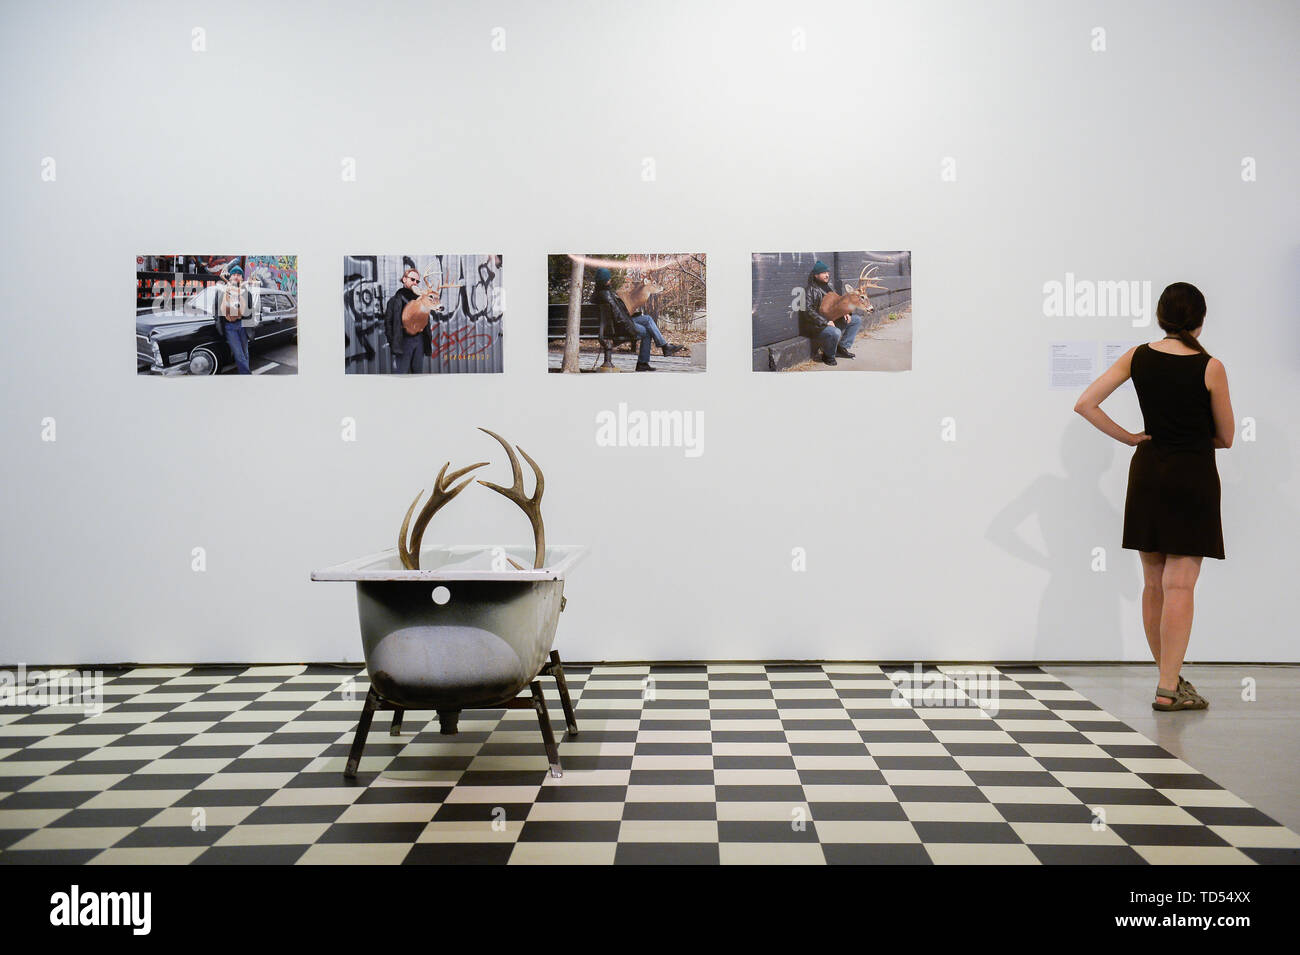 Krakow, Poland  11th June, 2019  A woman looks at a